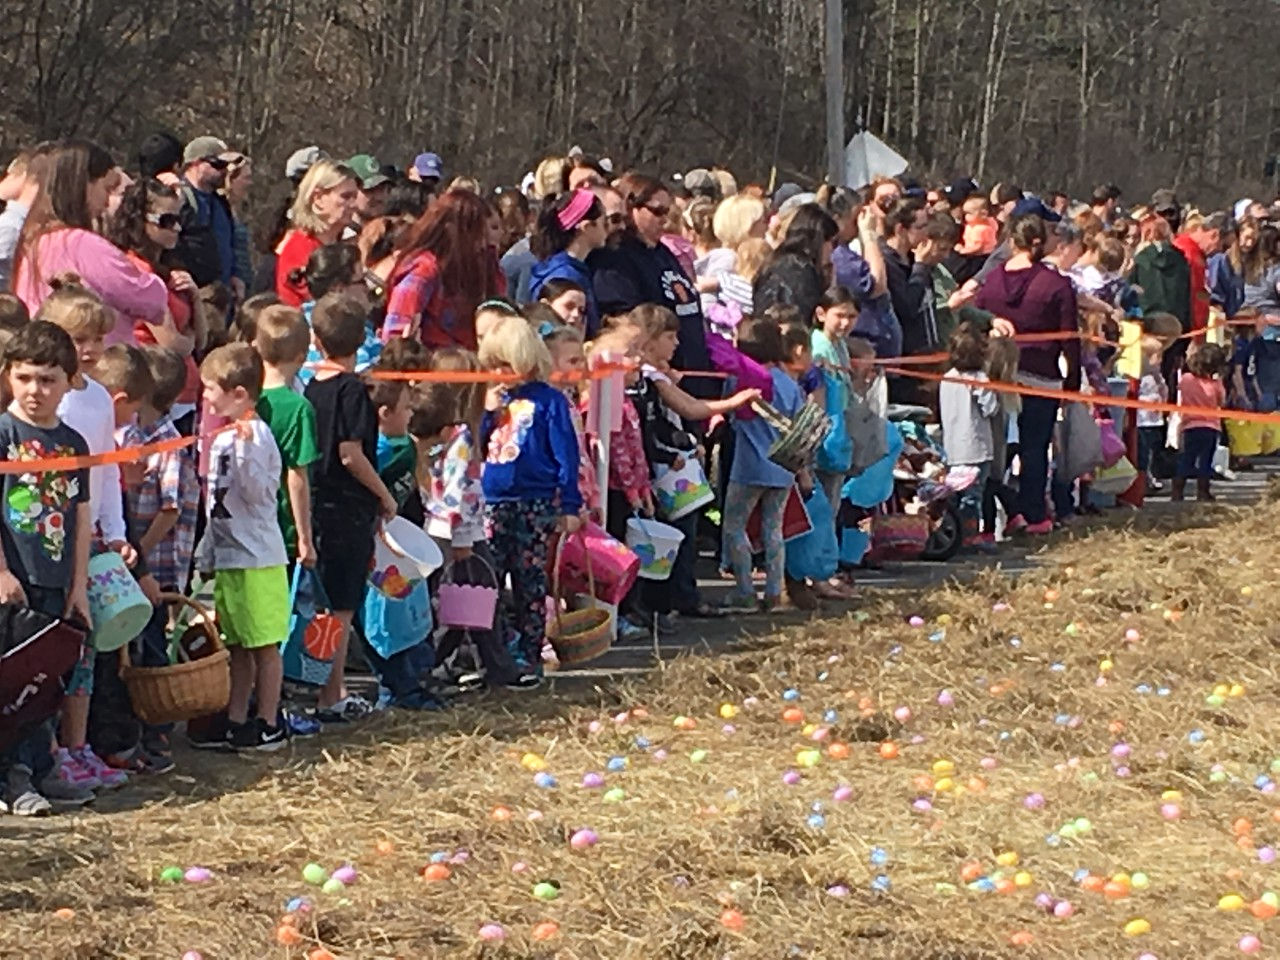 John Brewer - Oneida Daily Dispatch With more than 2,000 eggs waiting hidden in the straw, youngsters and their families line up for the annual Easter egg hunt in Canastota.